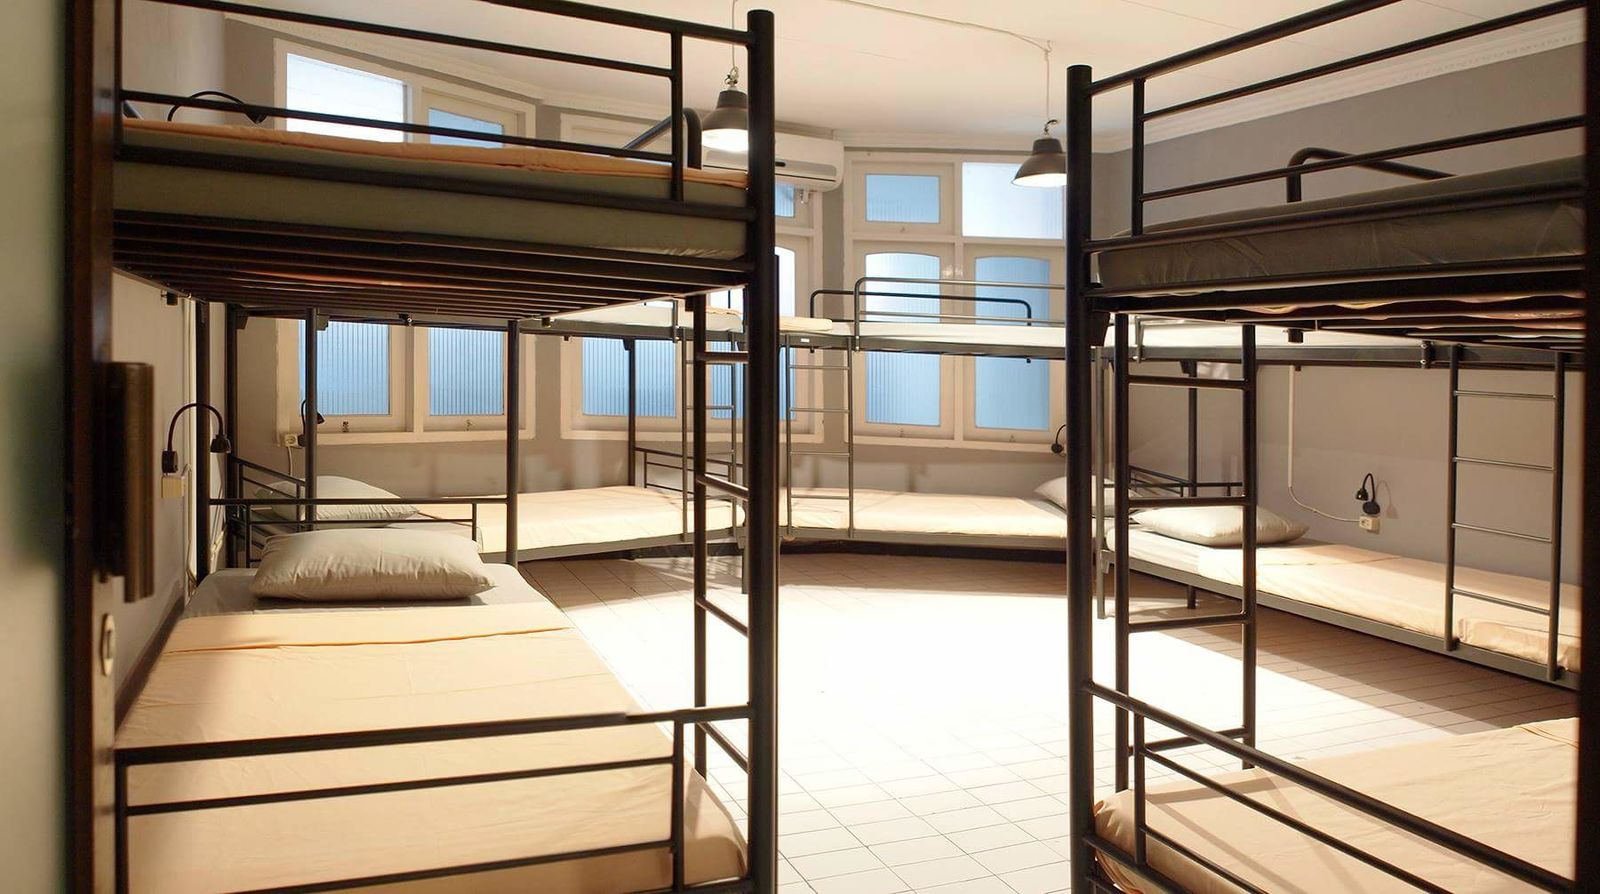 the Hostel shared bunk bed for 10 Persons